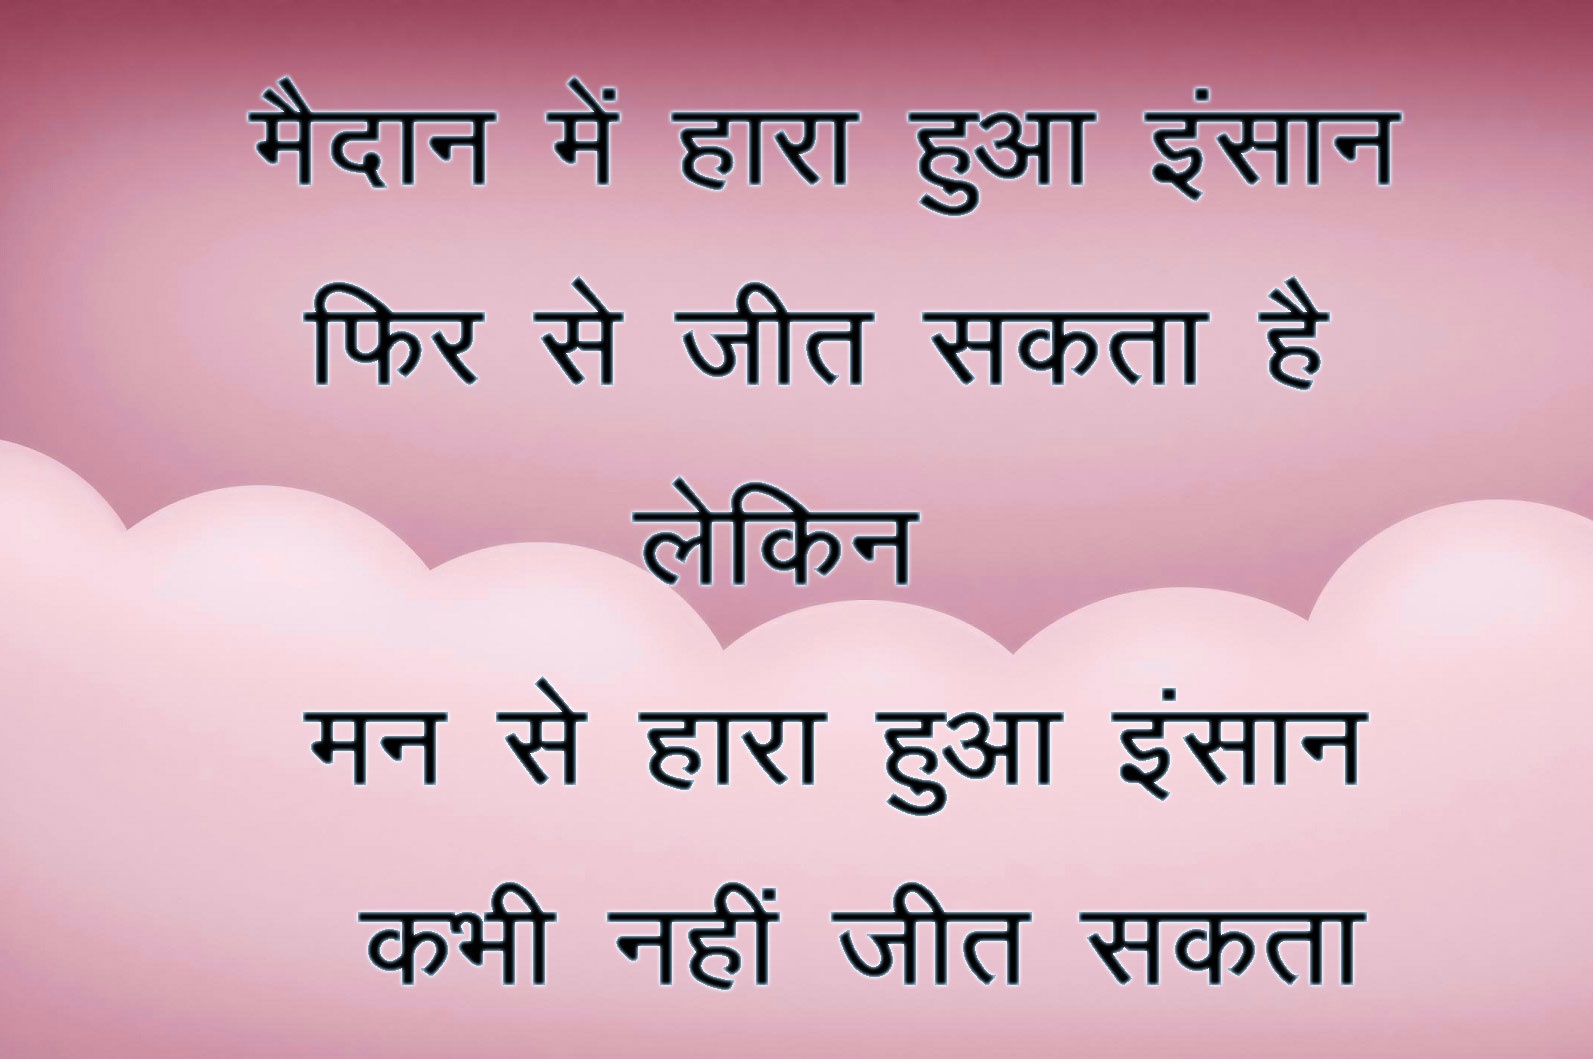 SAD LOVE ROMANTIC LIFE BEST HINDI SHAYARI IMAGES WALLPAPER FOR WHATSAPP